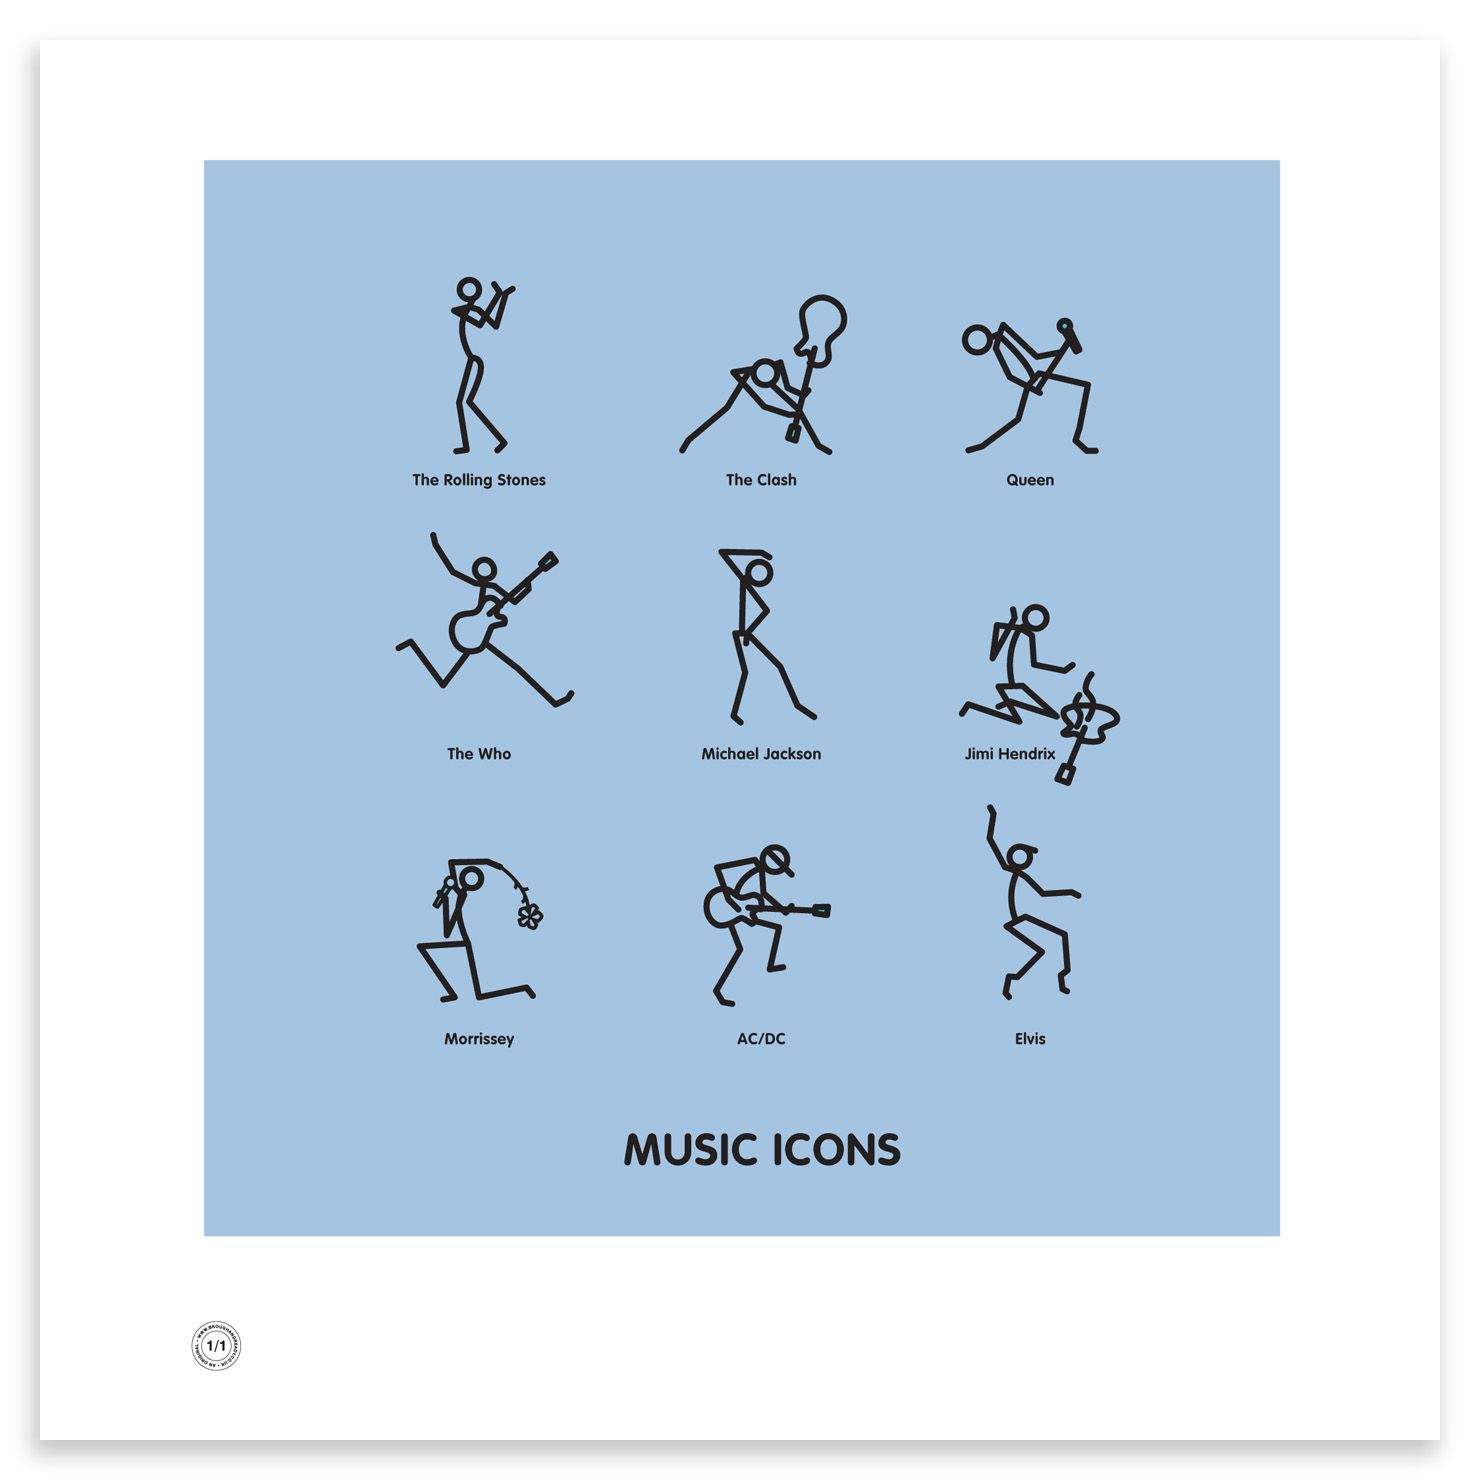 Music Icons, Guitar smashing rockers, flower waving crooners or a moonwalking Wacko… they're all featured in this stylish print.